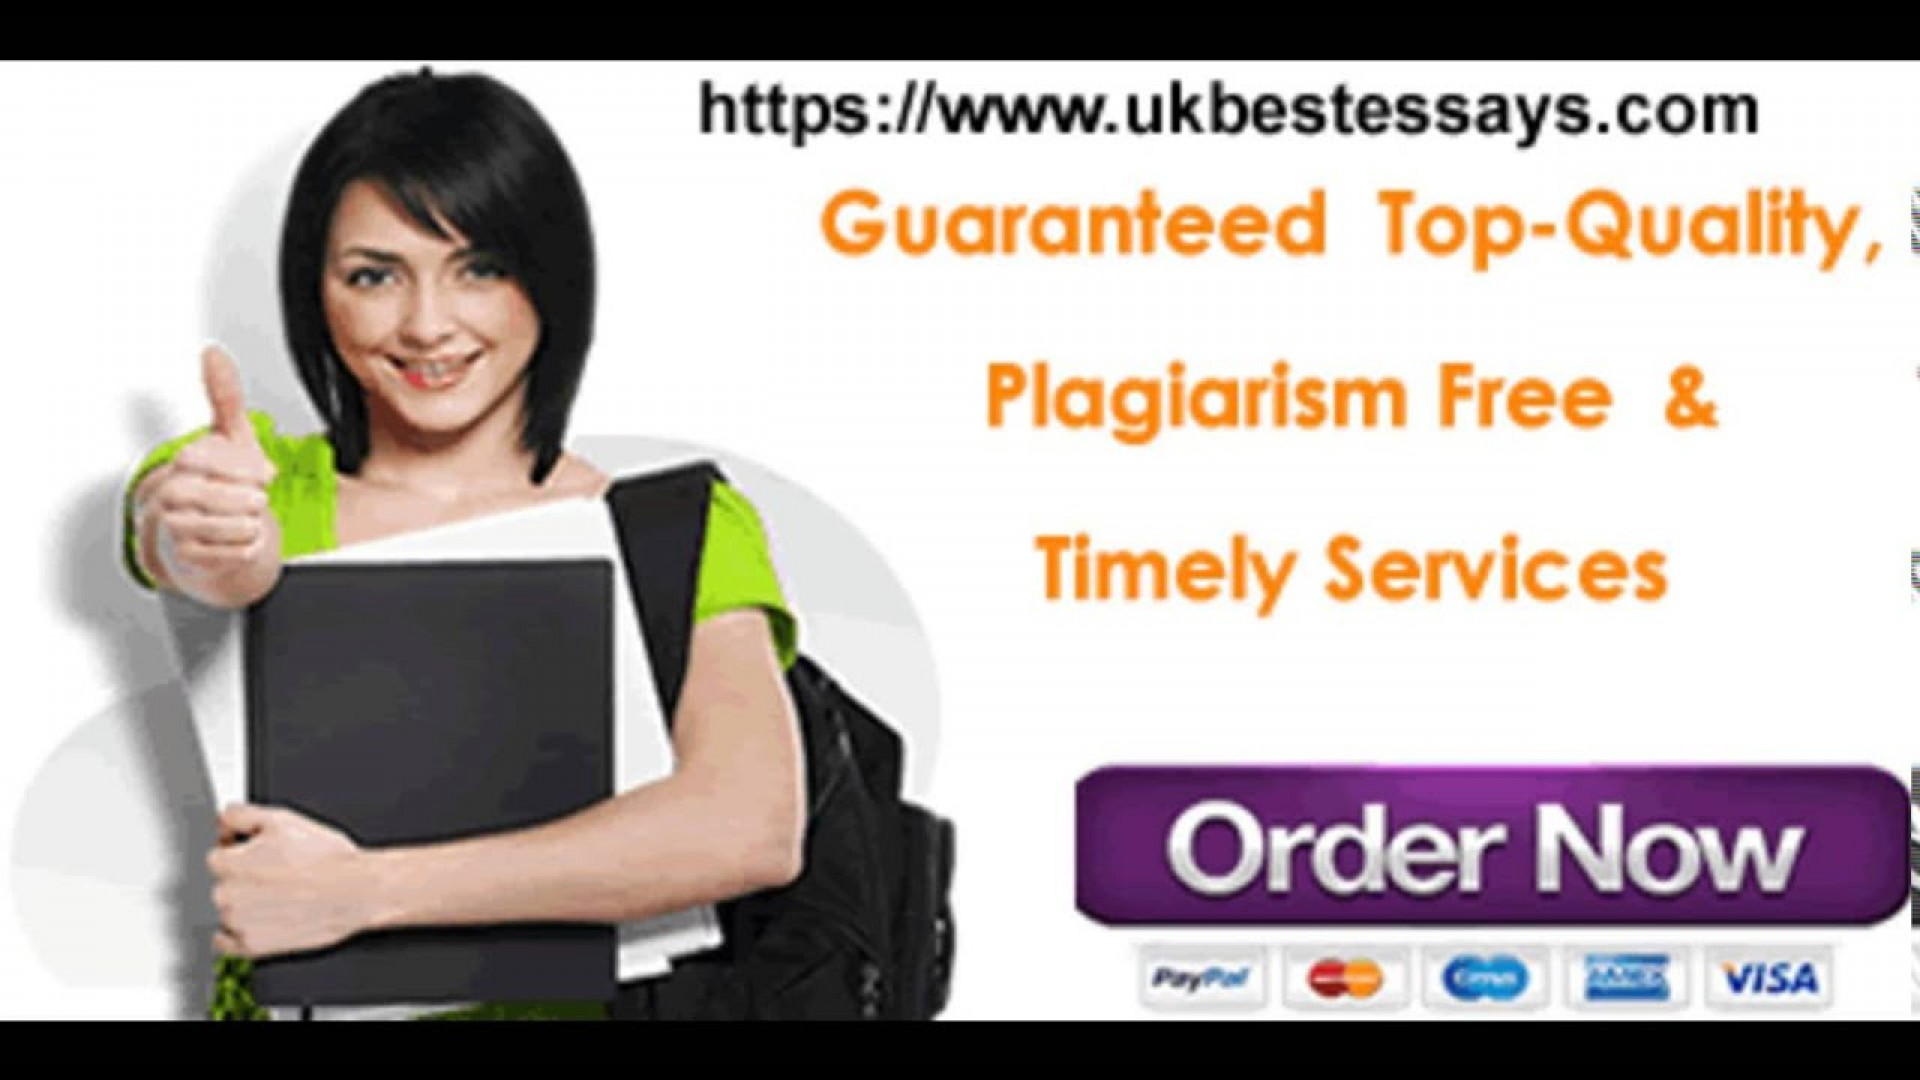 007 Uk Best Essays Trusted Custom Essay Writing Service Fast Maxresde Reviews Cheap Professional Help College Free In India Impressive Services Australia 1920